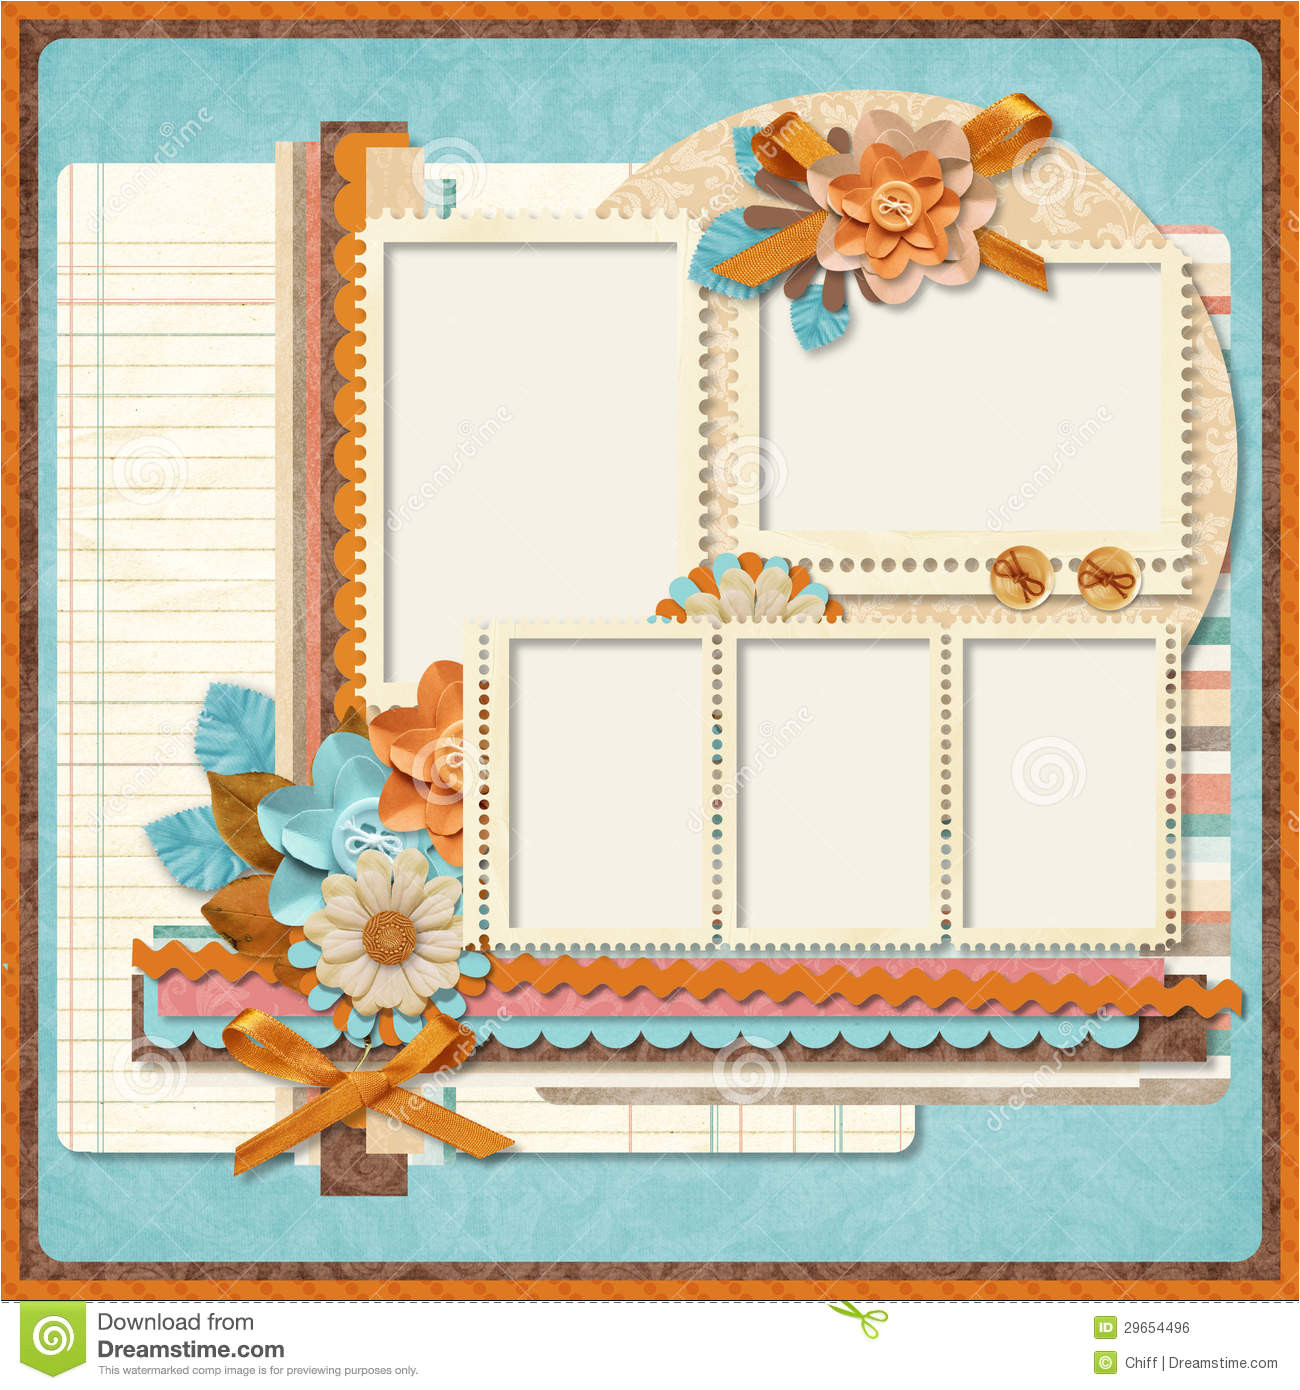 royalty free stock image retro family album 365 project scrapbooking templates image29654496